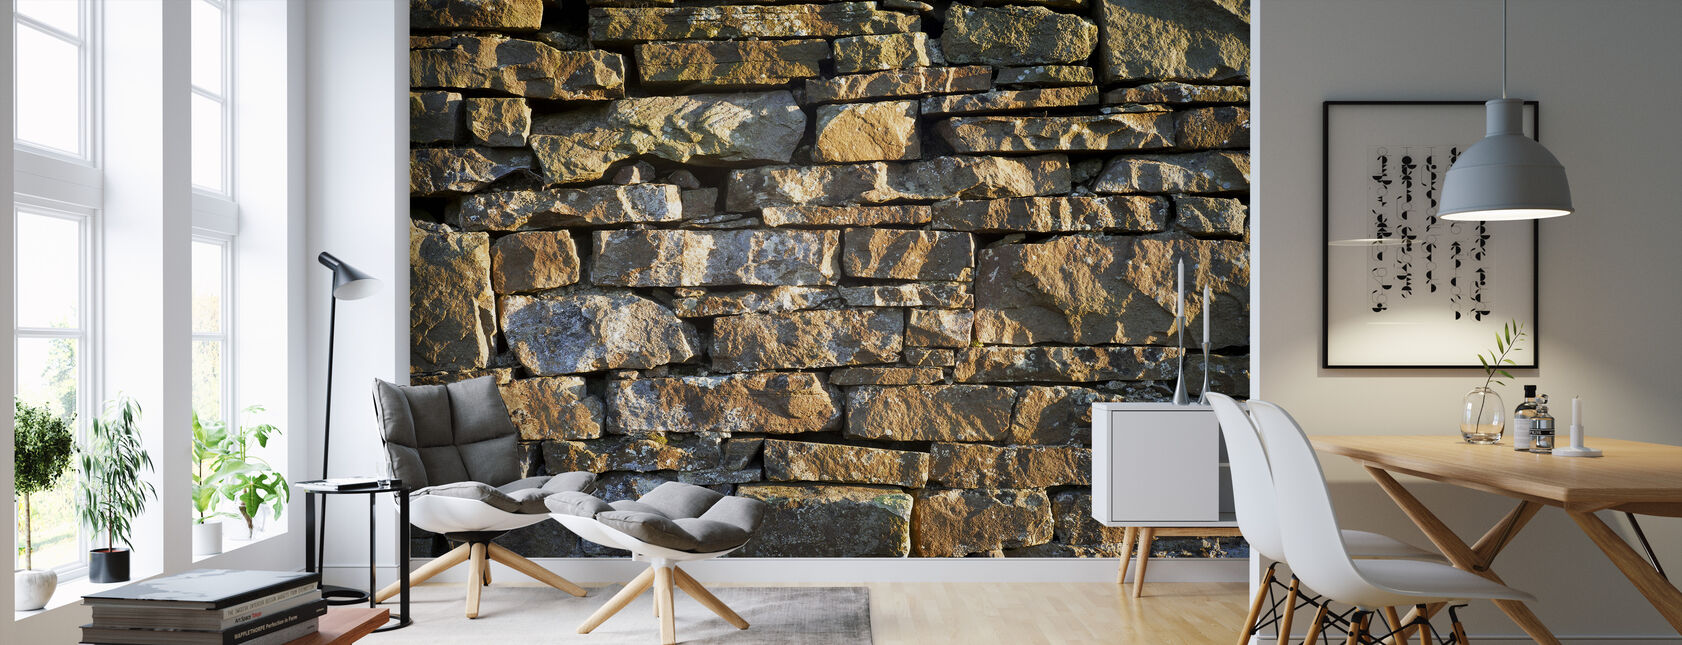 Hand Made Stone Wall - Wallpaper - Living Room